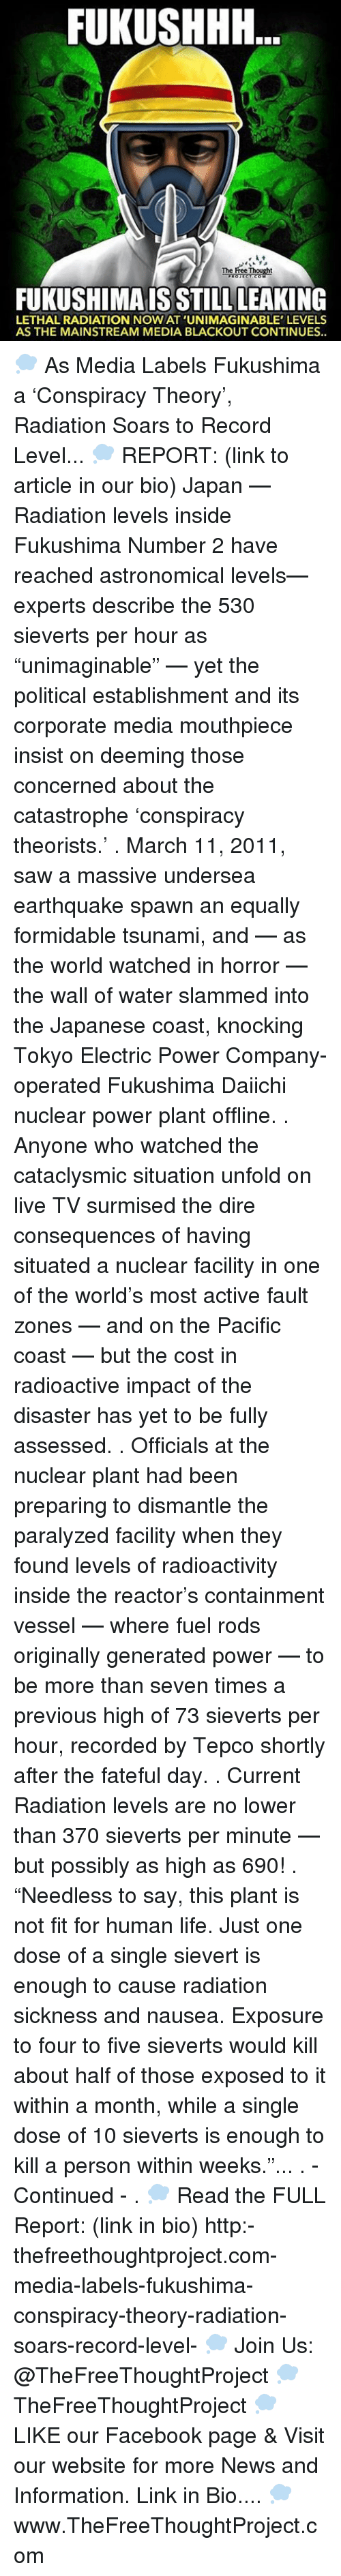 """Memes, Earthquake, and Tsunami: FUKUSHHH  A  FUKUSHIMAIS STILL LEAKING  LETHAL RADIATION NOW AT 'UNIMAGINABLE' LEVELS  AS THE MAINSTREAM MEDIA BLACKOUT CONTINUES.. 💭 As Media Labels Fukushima a 'Conspiracy Theory', Radiation Soars to Record Level... 💭 REPORT: (link to article in our bio) Japan — Radiation levels inside Fukushima Number 2 have reached astronomical levels— experts describe the 530 sieverts per hour as """"unimaginable"""" — yet the political establishment and its corporate media mouthpiece insist on deeming those concerned about the catastrophe 'conspiracy theorists.' . March 11, 2011, saw a massive undersea earthquake spawn an equally formidable tsunami, and — as the world watched in horror — the wall of water slammed into the Japanese coast, knocking Tokyo Electric Power Company-operated Fukushima Daiichi nuclear power plant offline. . Anyone who watched the cataclysmic situation unfold on live TV surmised the dire consequences of having situated a nuclear facility in one of the world's most active fault zones — and on the Pacific coast — but the cost in radioactive impact of the disaster has yet to be fully assessed. . Officials at the nuclear plant had been preparing to dismantle the paralyzed facility when they found levels of radioactivity inside the reactor's containment vessel — where fuel rods originally generated power — to be more than seven times a previous high of 73 sieverts per hour, recorded by Tepco shortly after the fateful day. . Current Radiation levels are no lower than 370 sieverts per minute — but possibly as high as 690! . """"Needless to say, this plant is not fit for human life. Just one dose of a single sievert is enough to cause radiation sickness and nausea. Exposure to four to five sieverts would kill about half of those exposed to it within a month, while a single dose of 10 sieverts is enough to kill a person within weeks.""""... . - Continued - . 💭 Read the FULL Report: (link in bio) http:-thefreethoughtproject.com-media-labels-fu"""